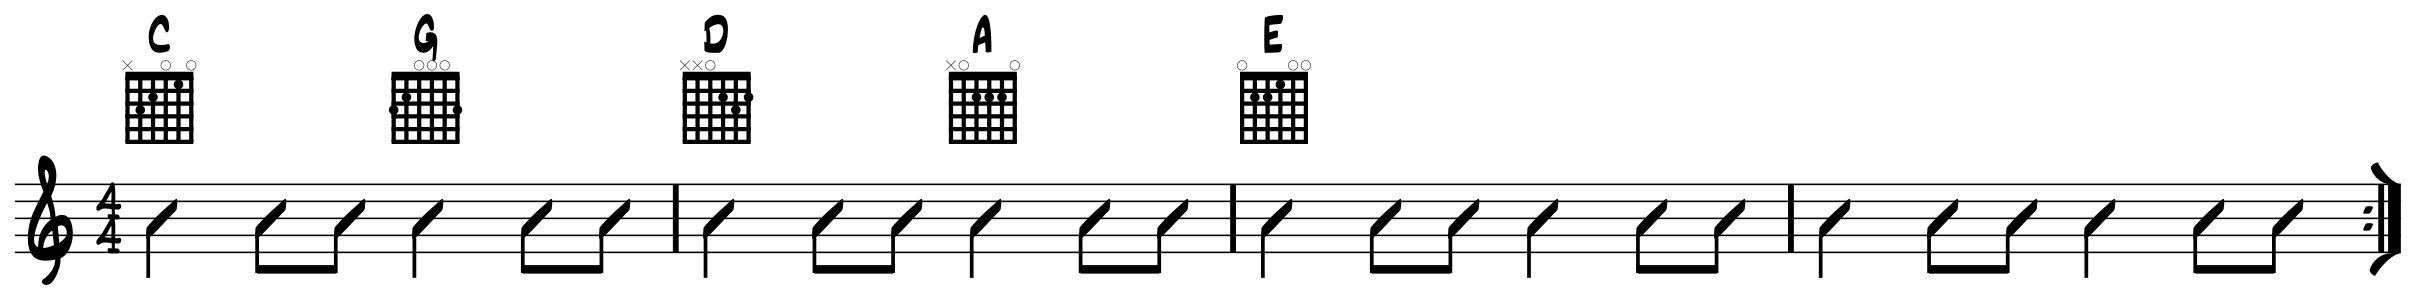 Hey Joe Chords: Putting CAGED Into Practice